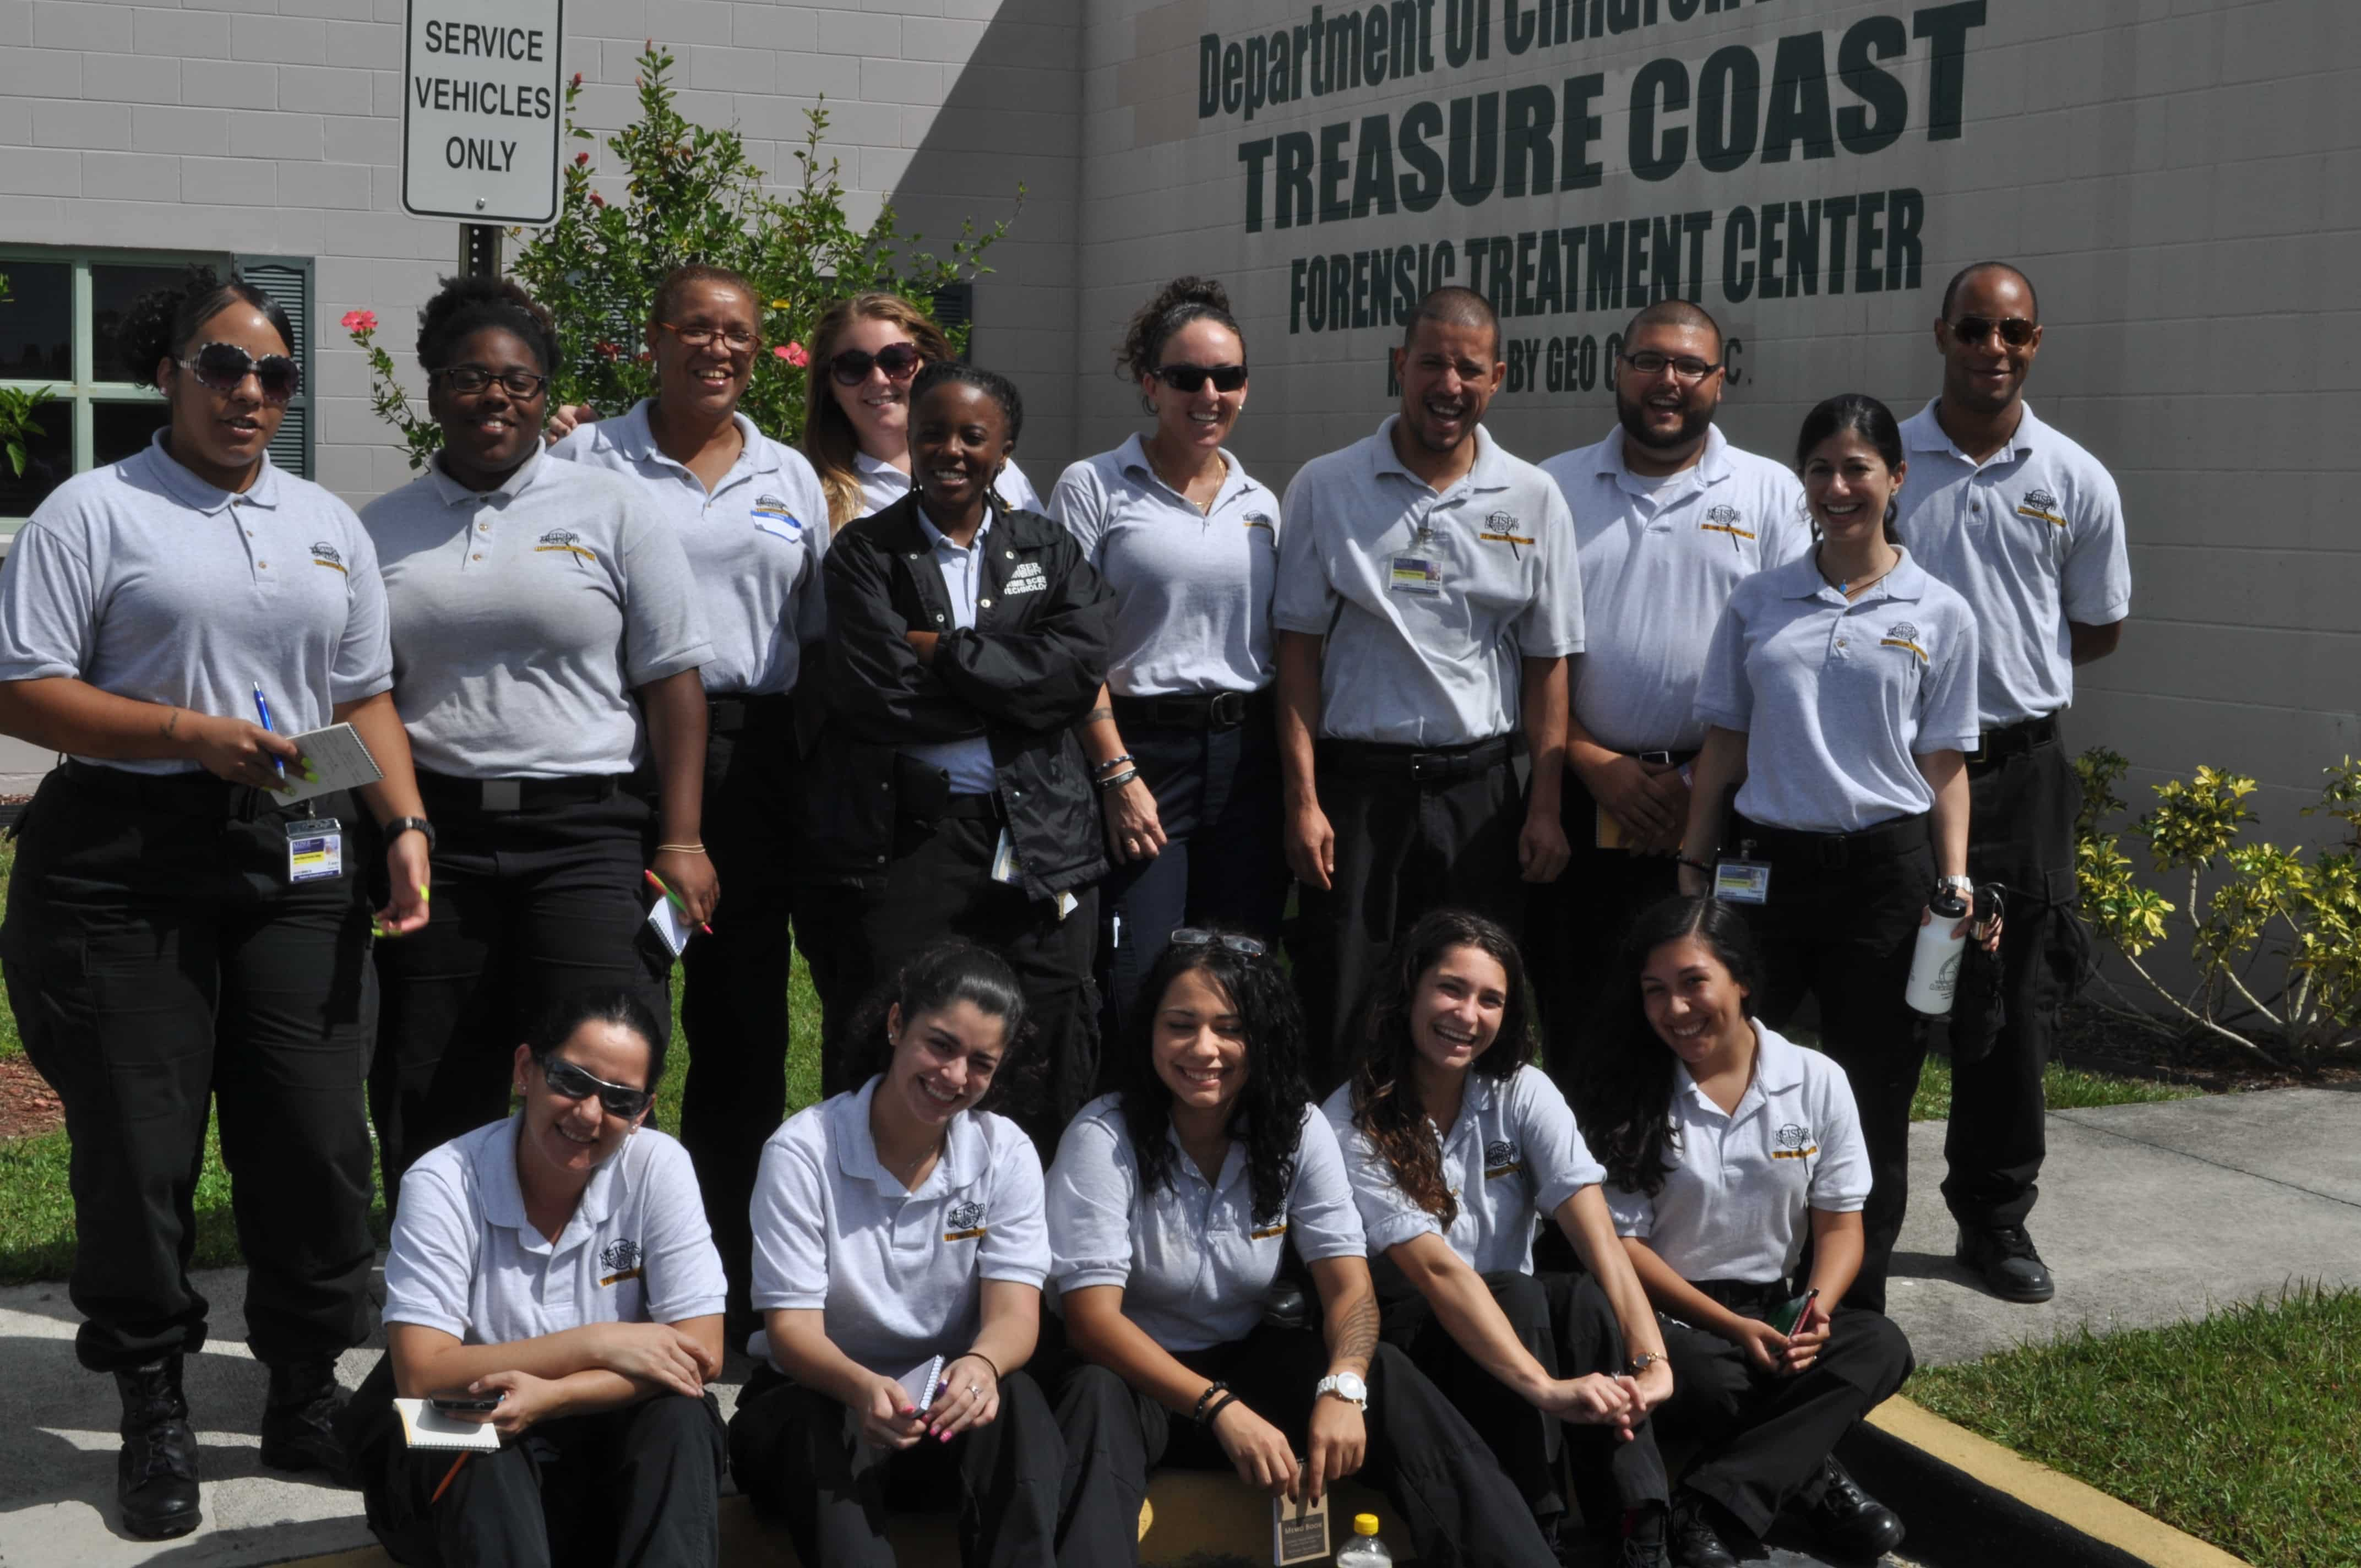 Crime Scene Technology Students From West Palm Beach Visit the Treasure Coast Forensic Treatment Center